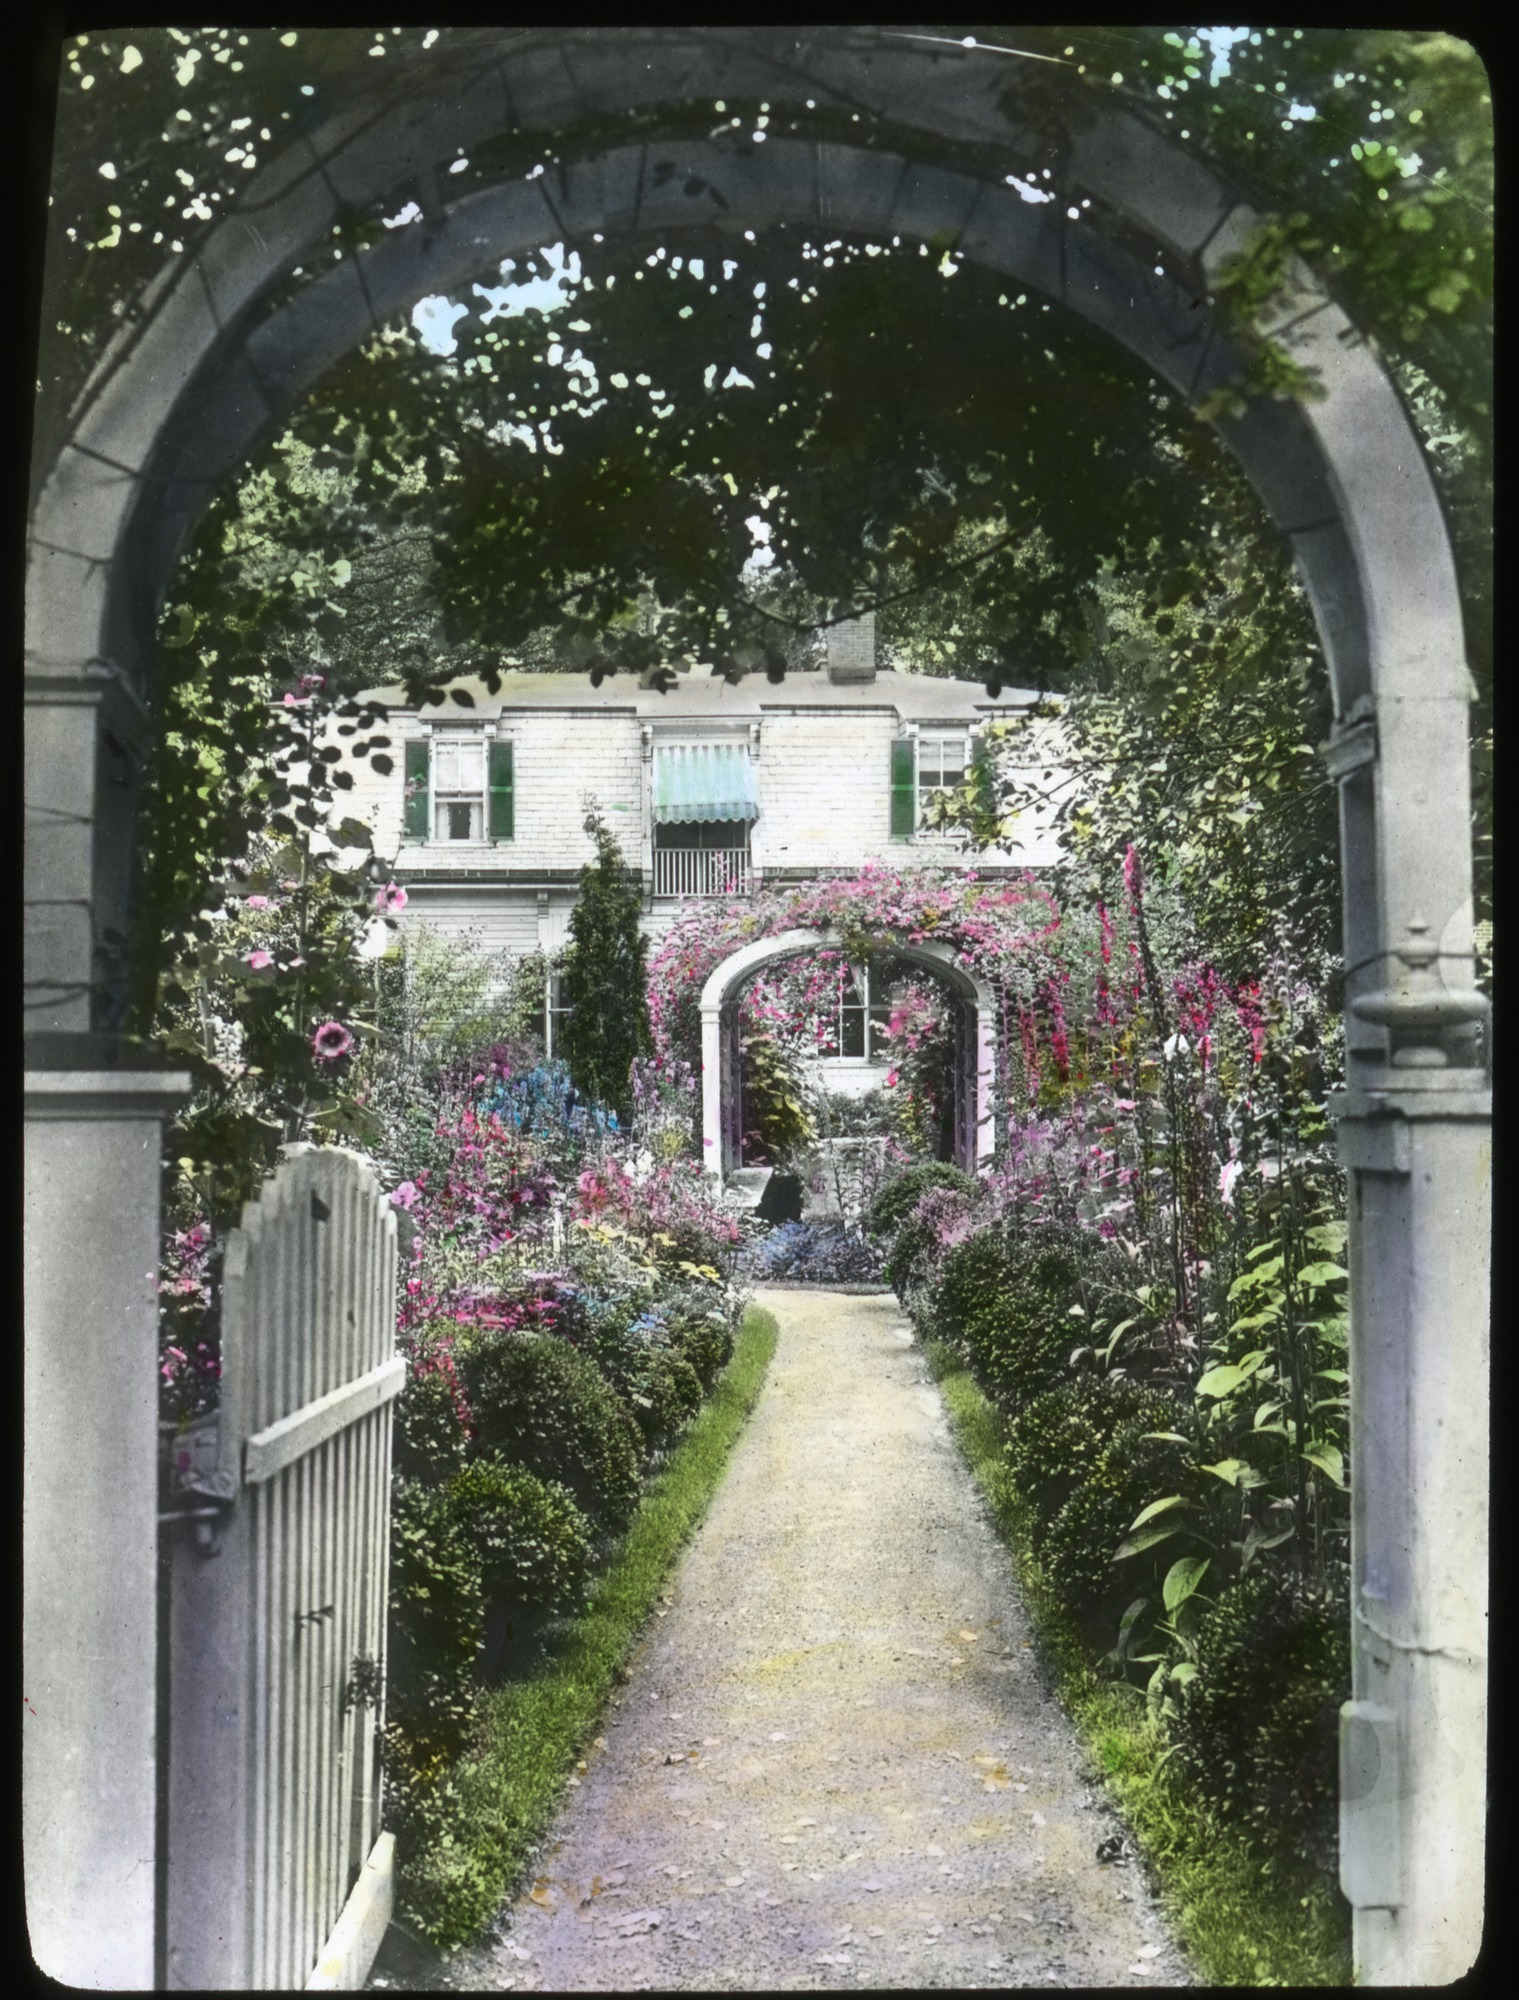 Laight Garden, Salem, Massachusetts, 1920s